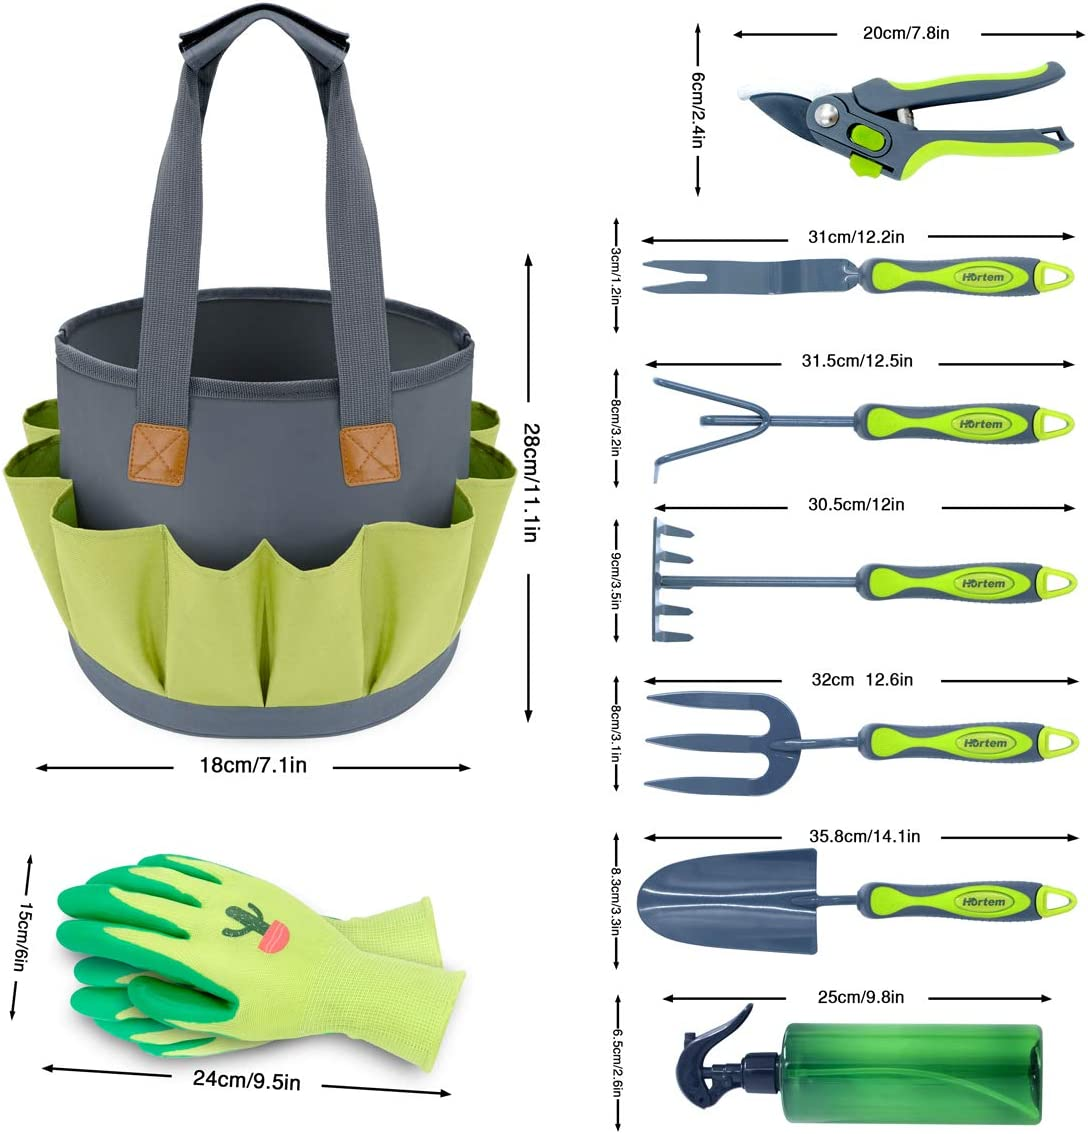 Hortem Gardening Tools Set, Heavy Duty 9 PCS Garden Kit Include Hand Tools, Pruners and Other Gardening Accessories as Gardening Gifts for Women and Men